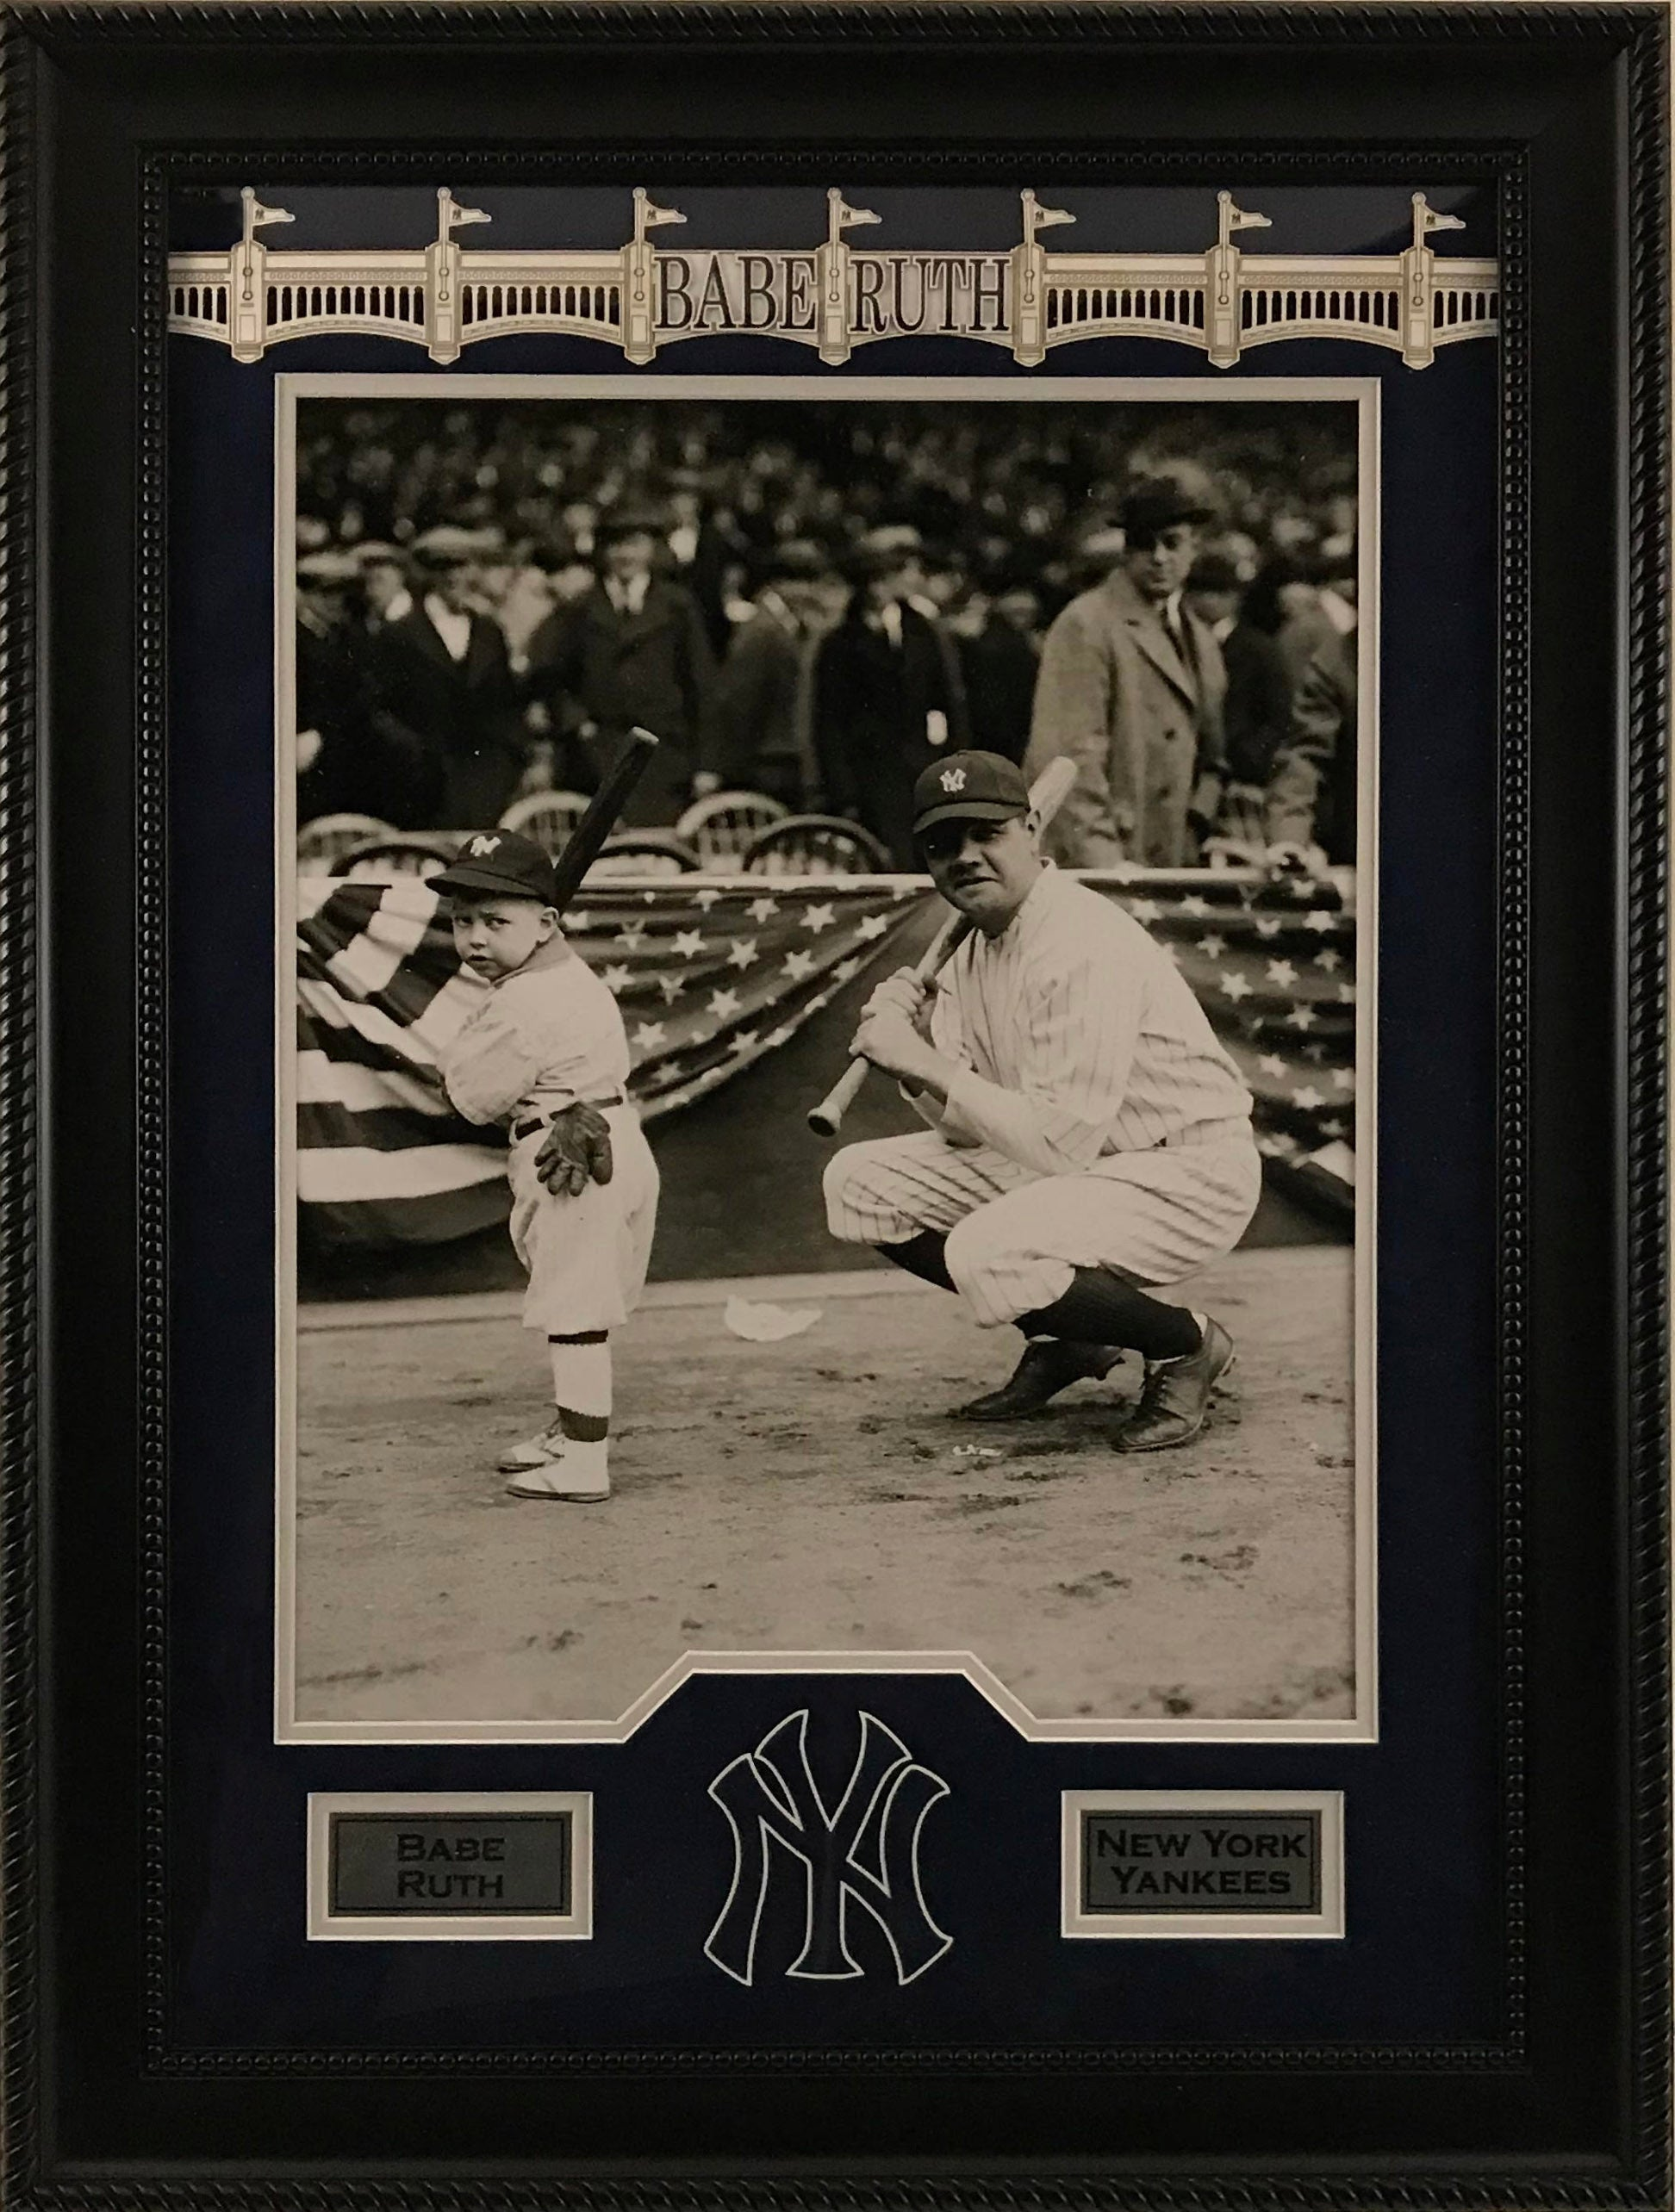 Babe Ruth and Kid with Bats Framed 16x20 Photo